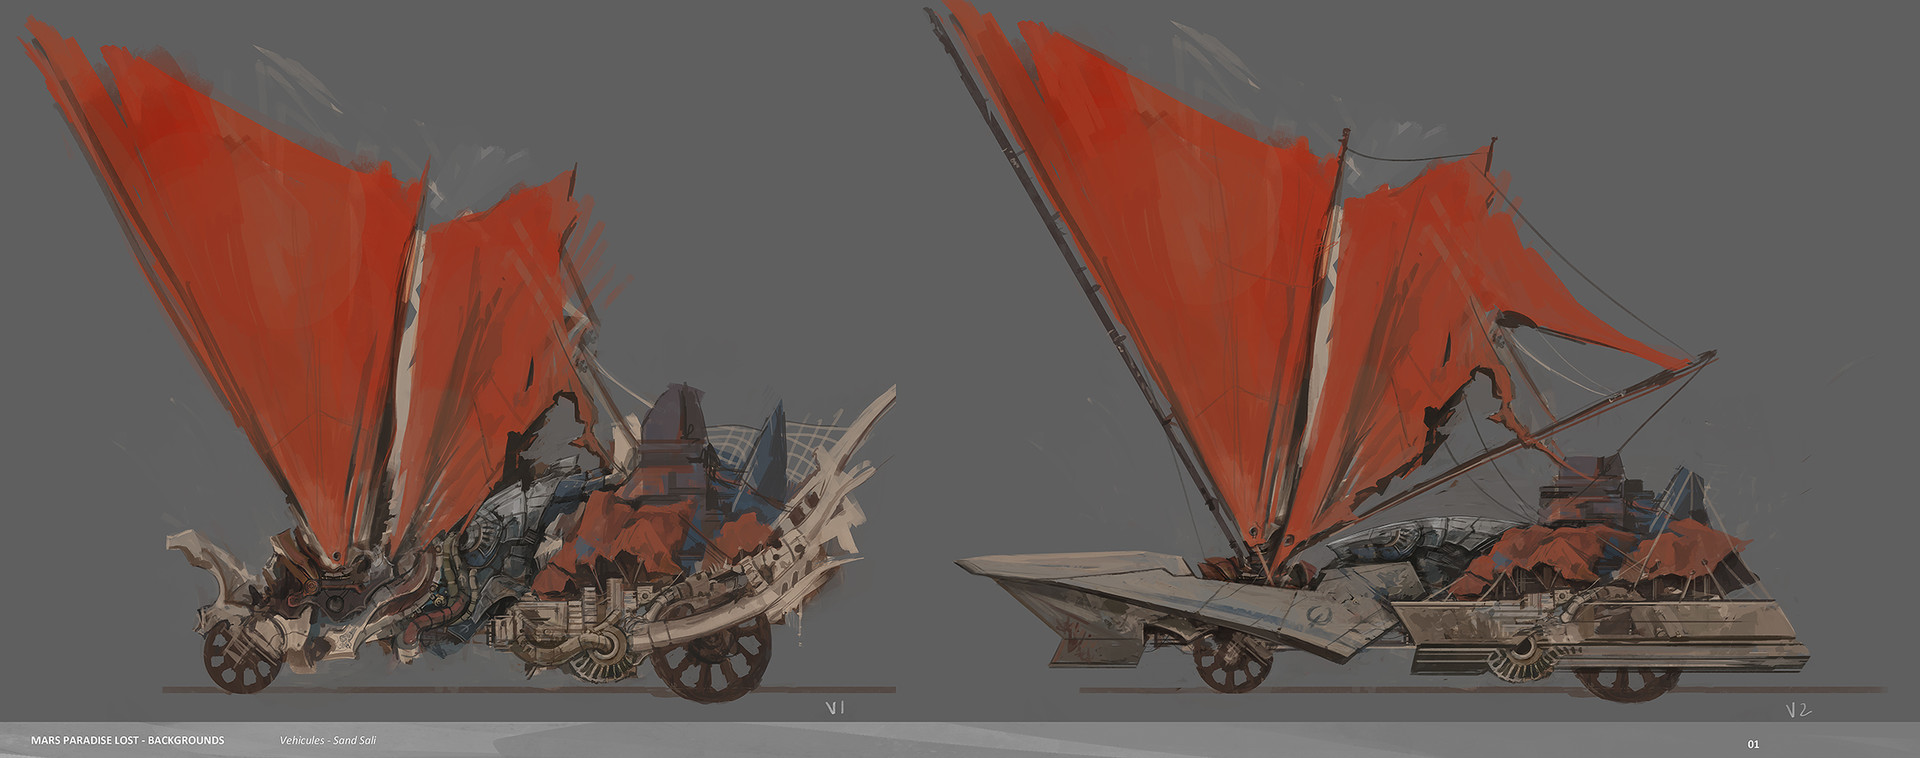 Alexandre chaudret mpl backgrounds vehicules sandsails01